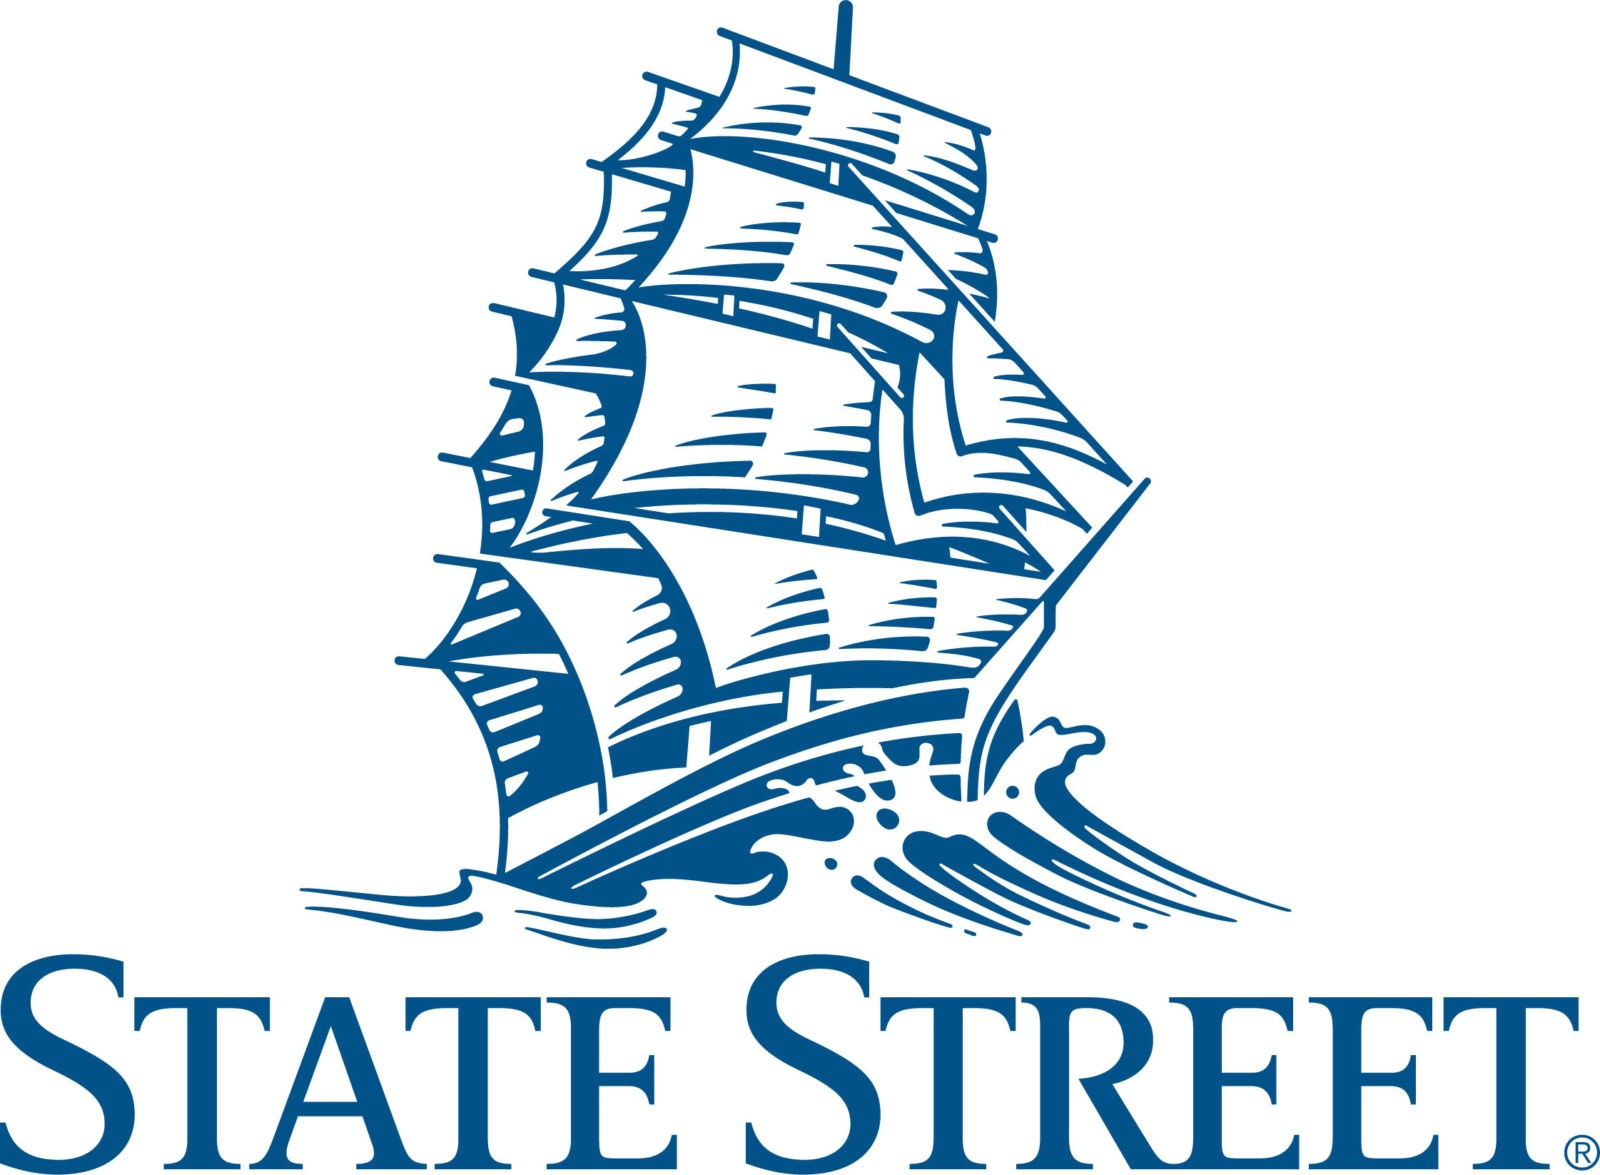 Minority Business Enterprises Underwrite the Majority of State Street 2031 Senior Subordinated Offering